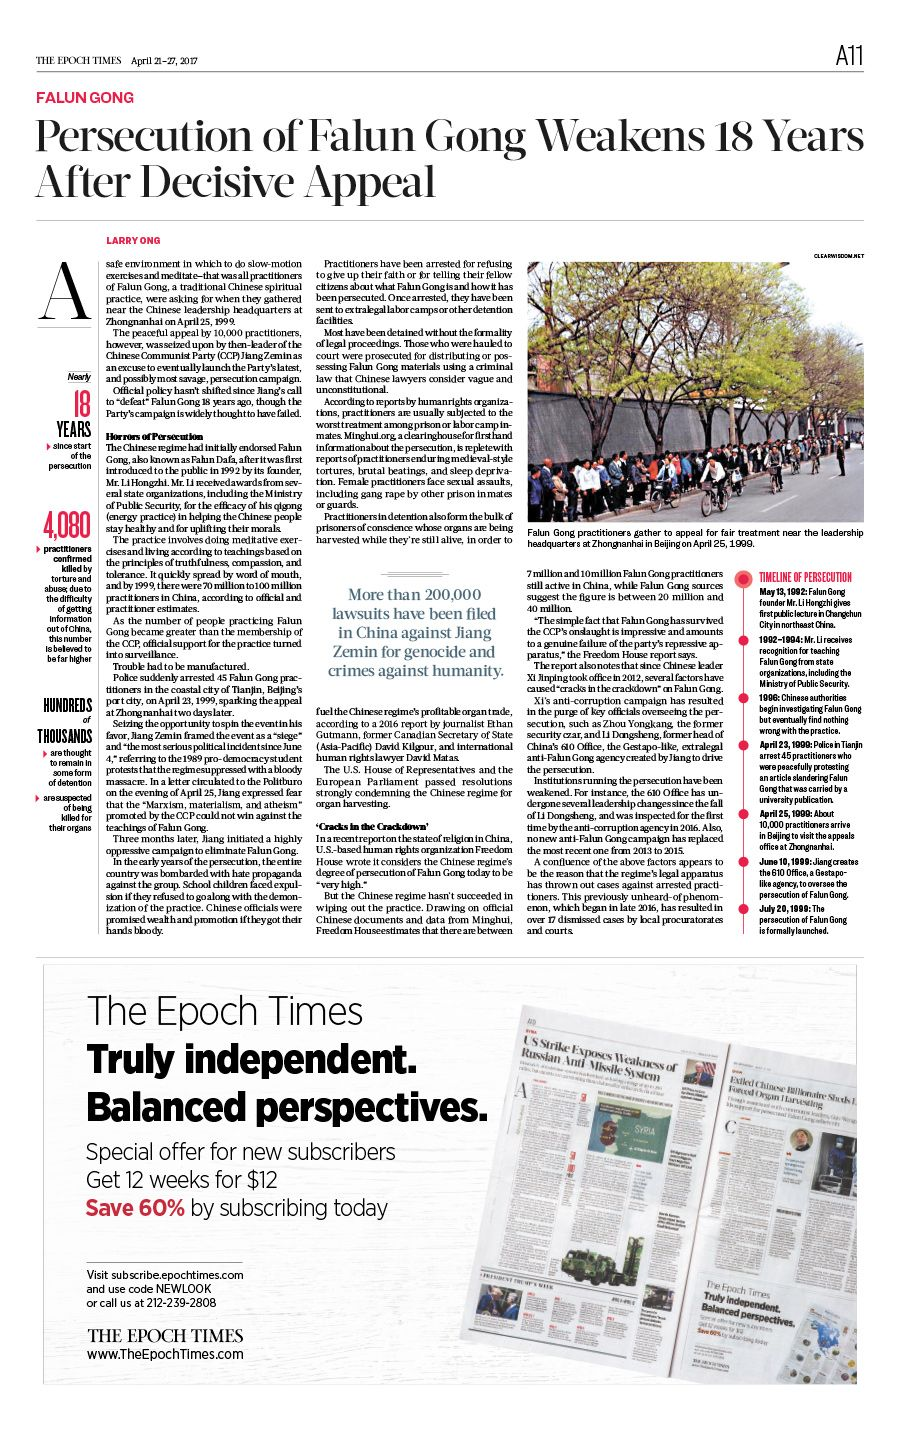 Persecution of Falun Gong Weakens 18 Years After Decisive Appeal The Epoch Times #425 #FalunGong #newspaper #editorialdesign